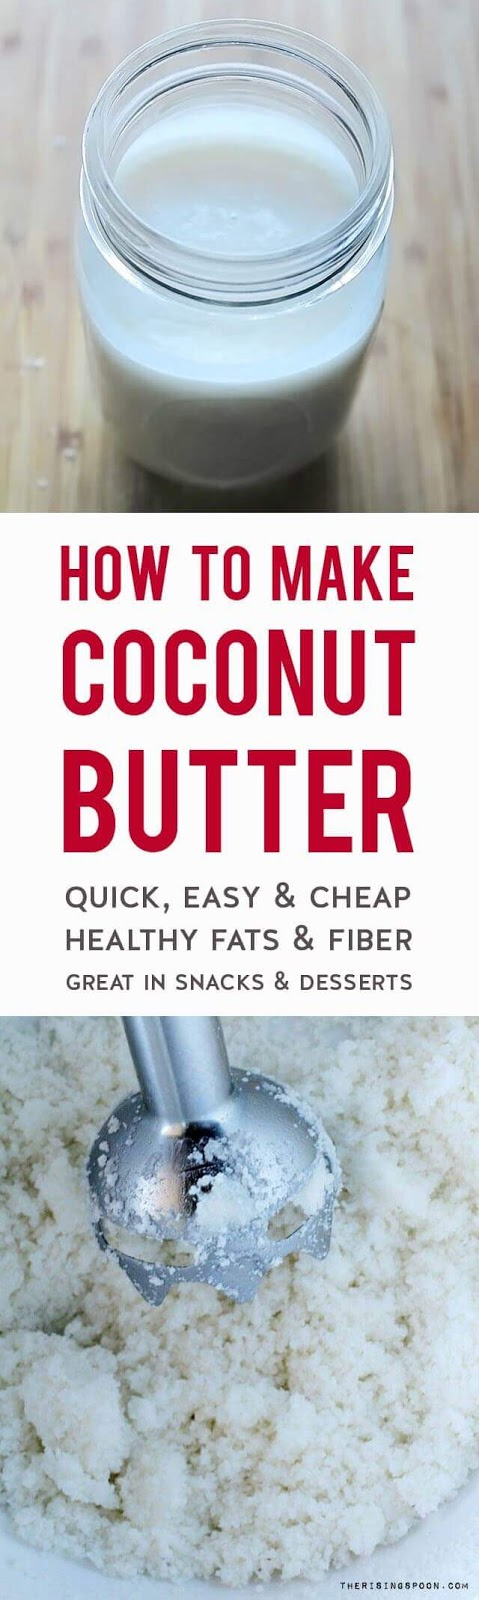 Learn how to make coconut butter at home in about 10-15 minutes with a bag of dried coconut flakes and an immersion blender + regular blender. This recipe is so cheap & easy! Use coconut butter (also called coconut manna) in place of peanut or almond butter in your favorite snacks and desserts for extra fiber and healthy fats.